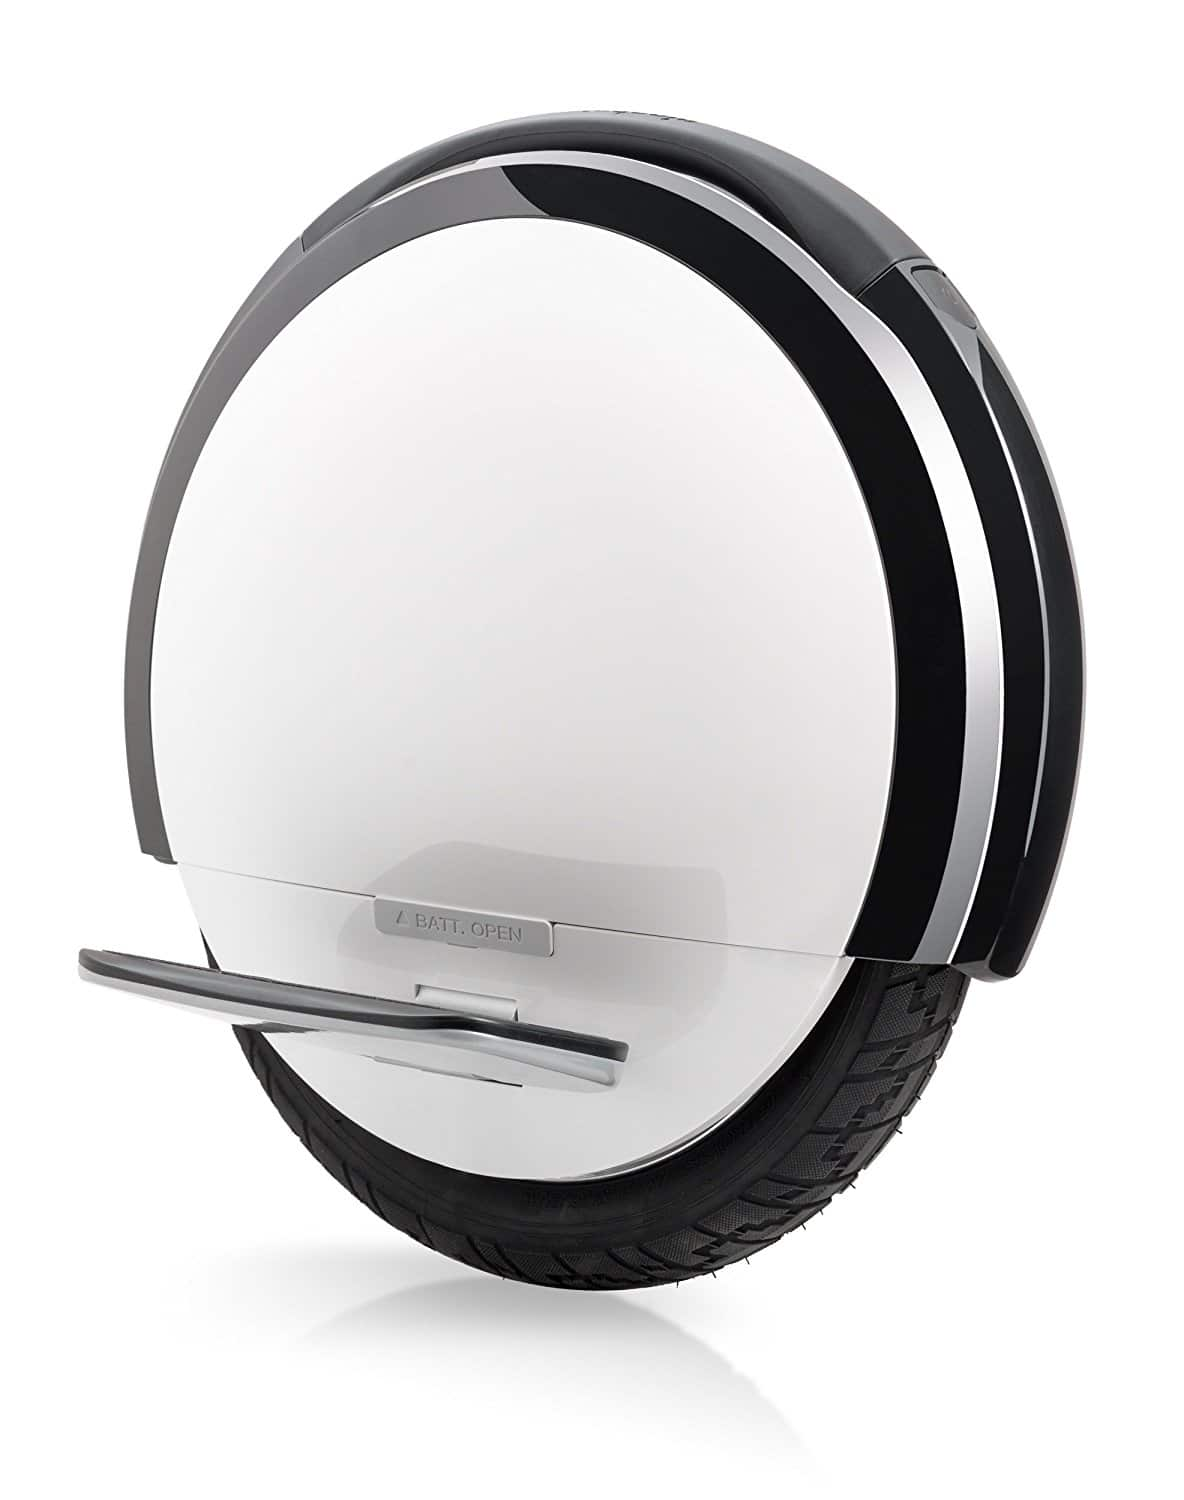 Segway One S1 One-Wheeled Personal Transporter